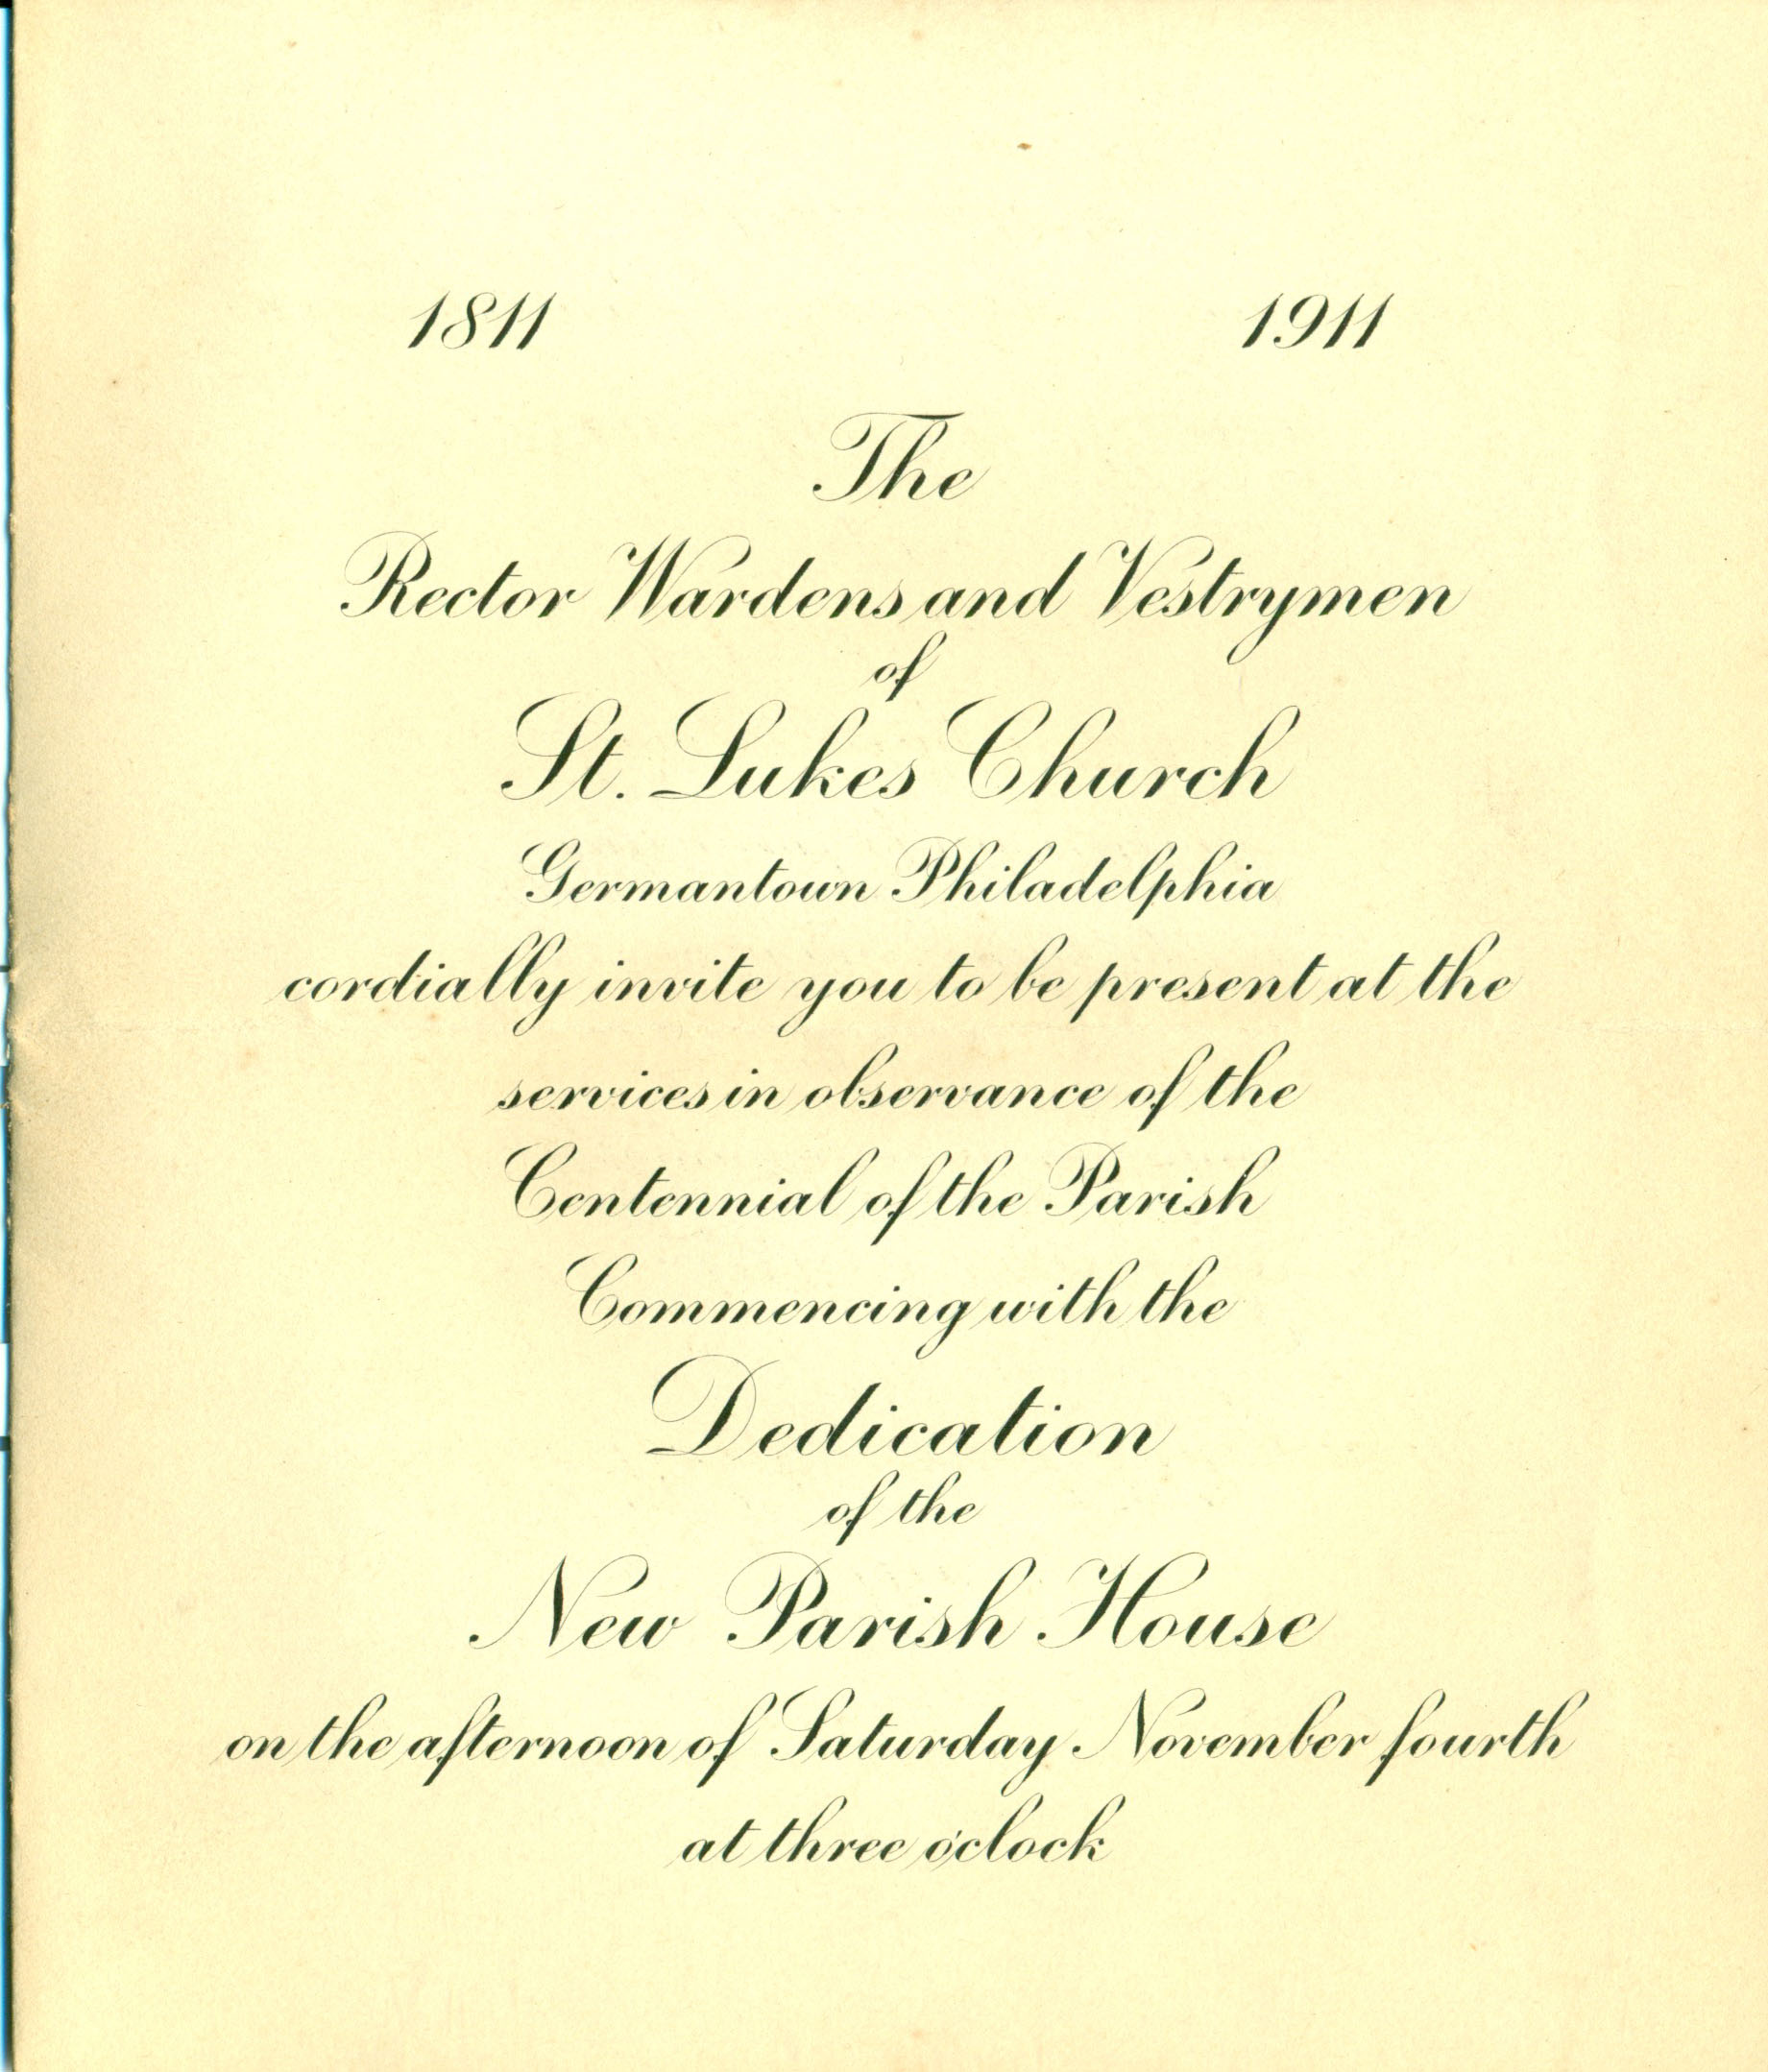 Invitation To The Dedication Of The New Parish House At St Luke S